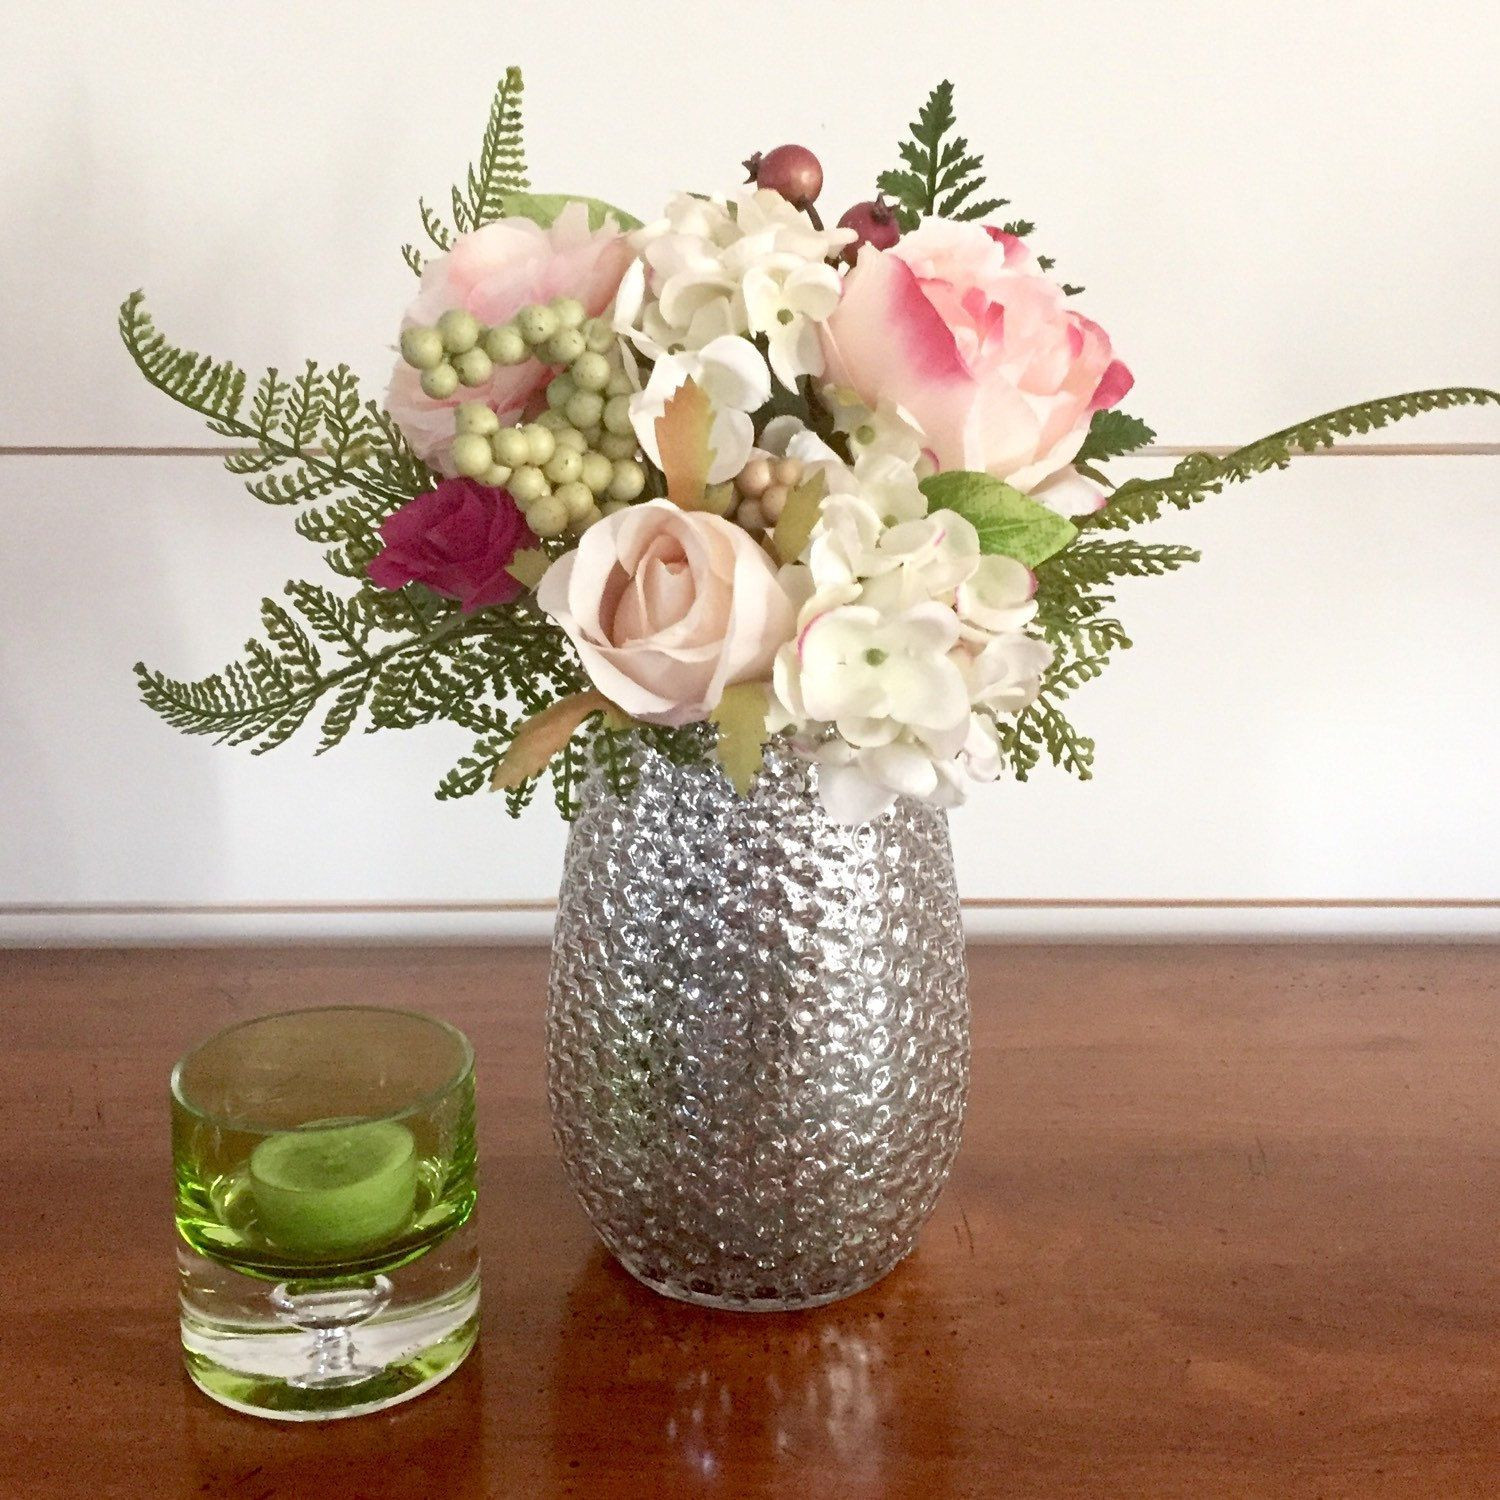 Mint Julep Cup Vases wholesale Of Lovely Vintage Hobnailed Mercury Glass Vase Spring Summer Floral In Lovely Vintage Hobnailed Mercury Glass Vase Spring Summer Floral Arrangement Centerpiece